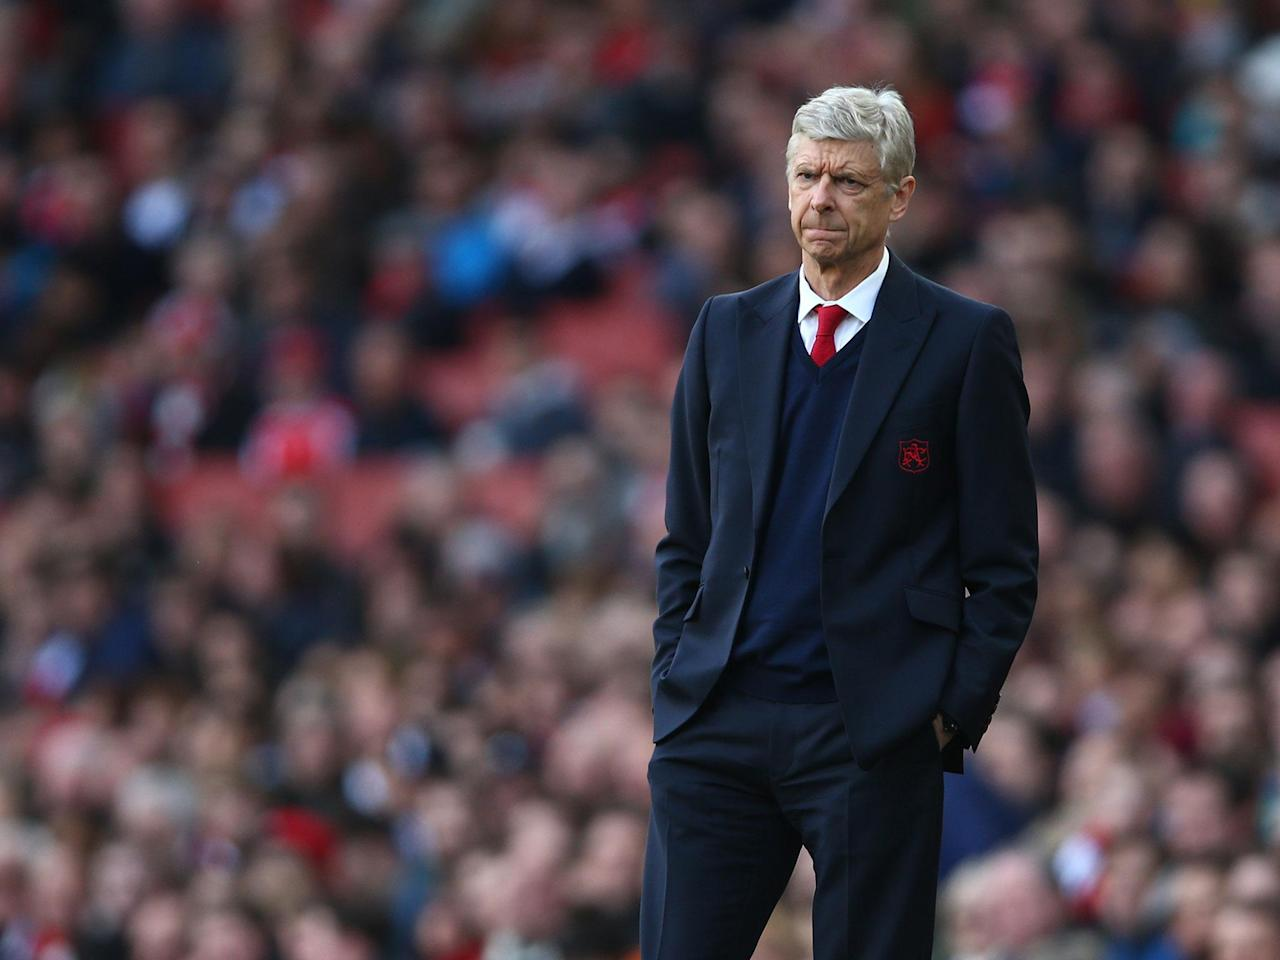 Arsene Wenger's decision to leave Arsenal 'right for club and manager,' says fan group